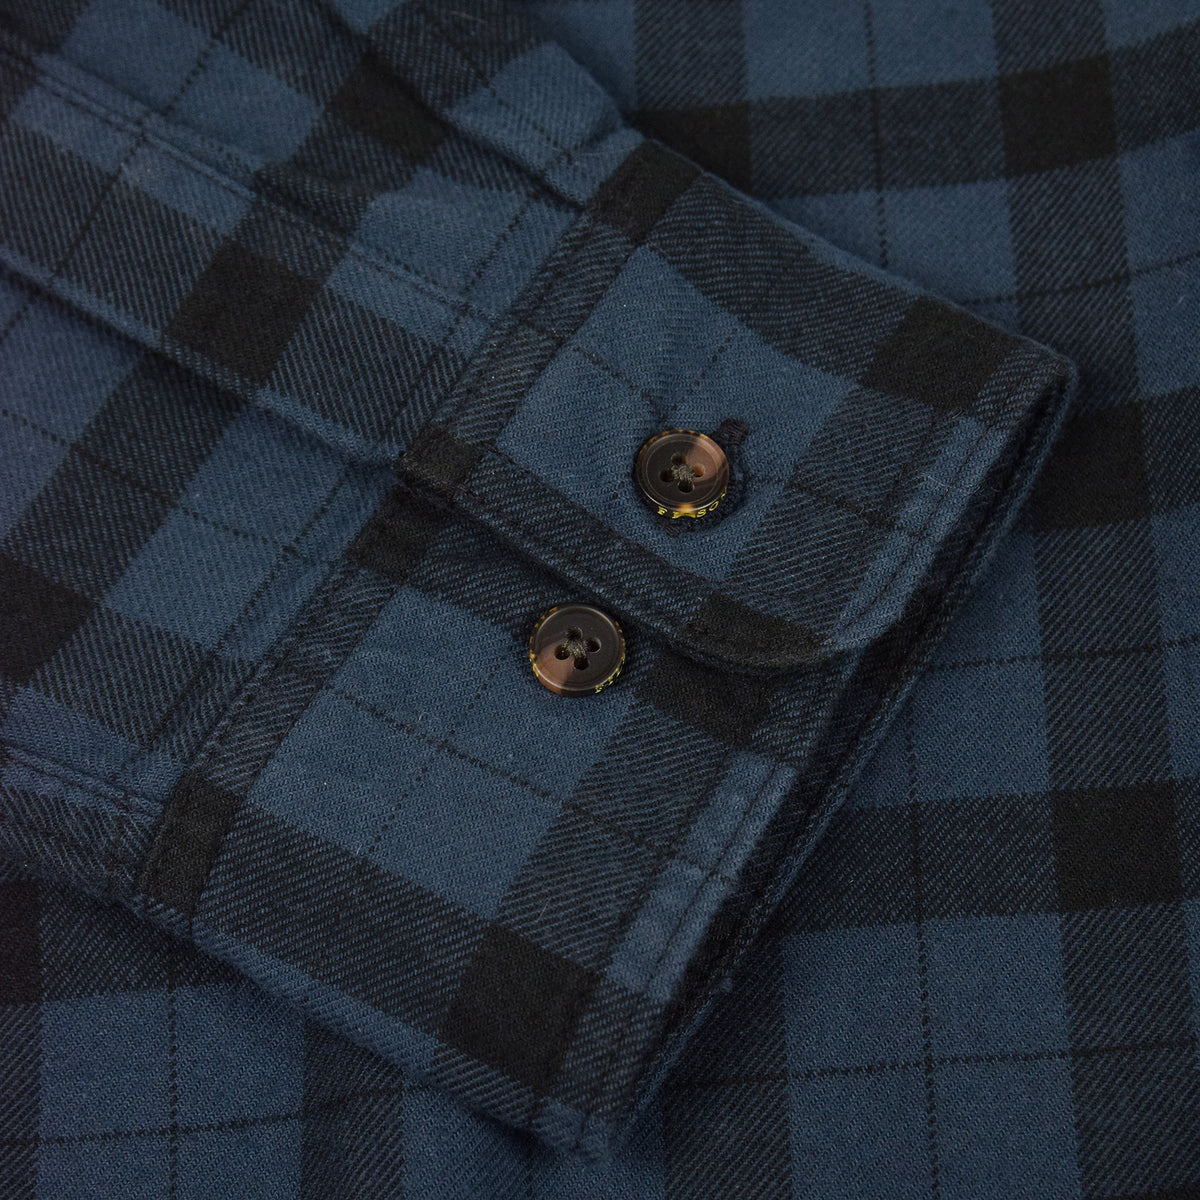 Filson Alaskan Guide Cotton Flannel Shirt Blue/Black Cuff